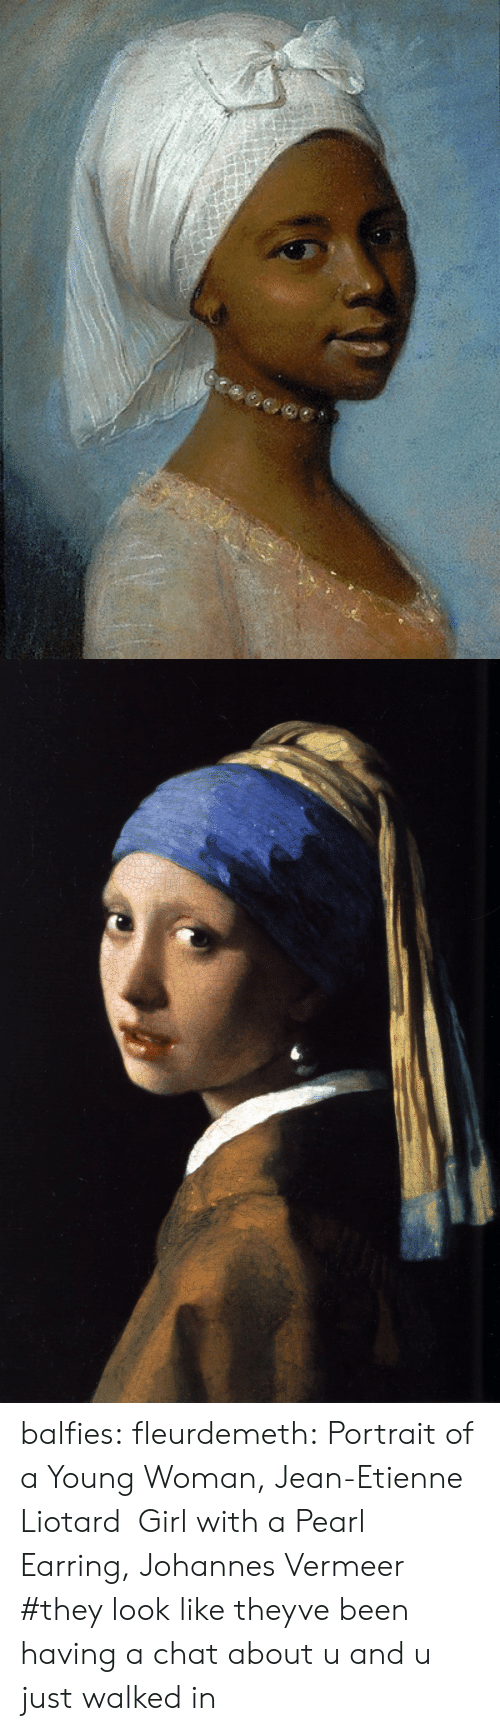 young woman: balfies:  fleurdemeth:  Portrait of a Young Woman, Jean-Etienne Liotard  Girl with a Pearl Earring, Johannes Vermeer    #they look like theyve been having a chat about u and u just walked in